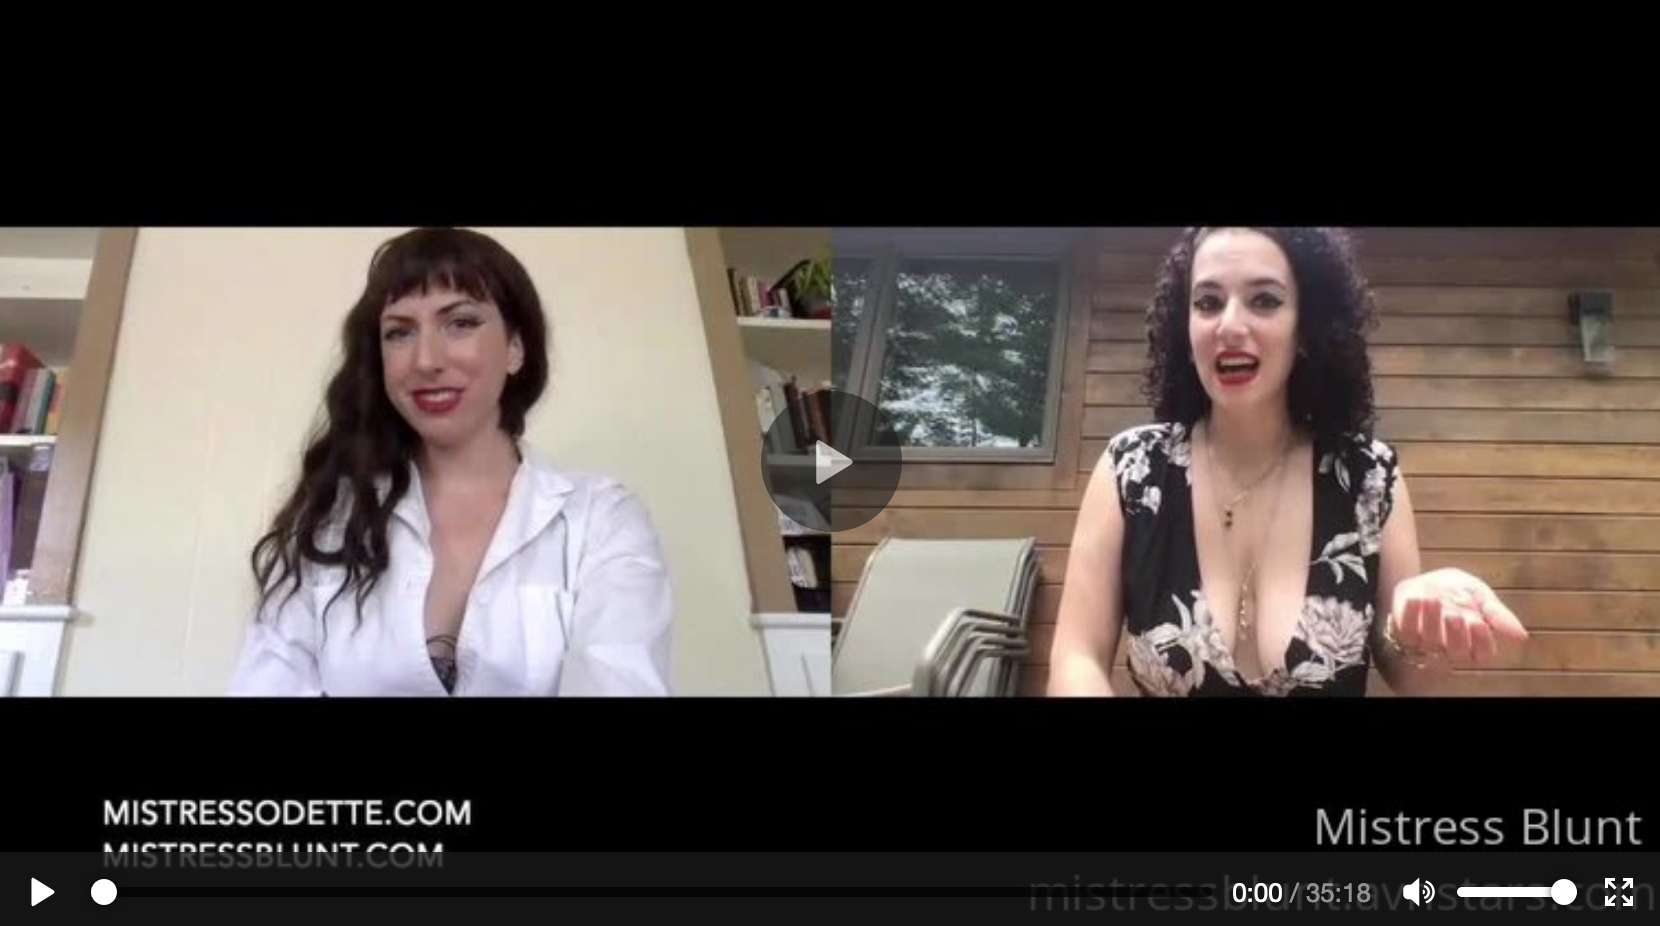 Mistress Blunt interviews Mistress Odette about Medical Fetishes